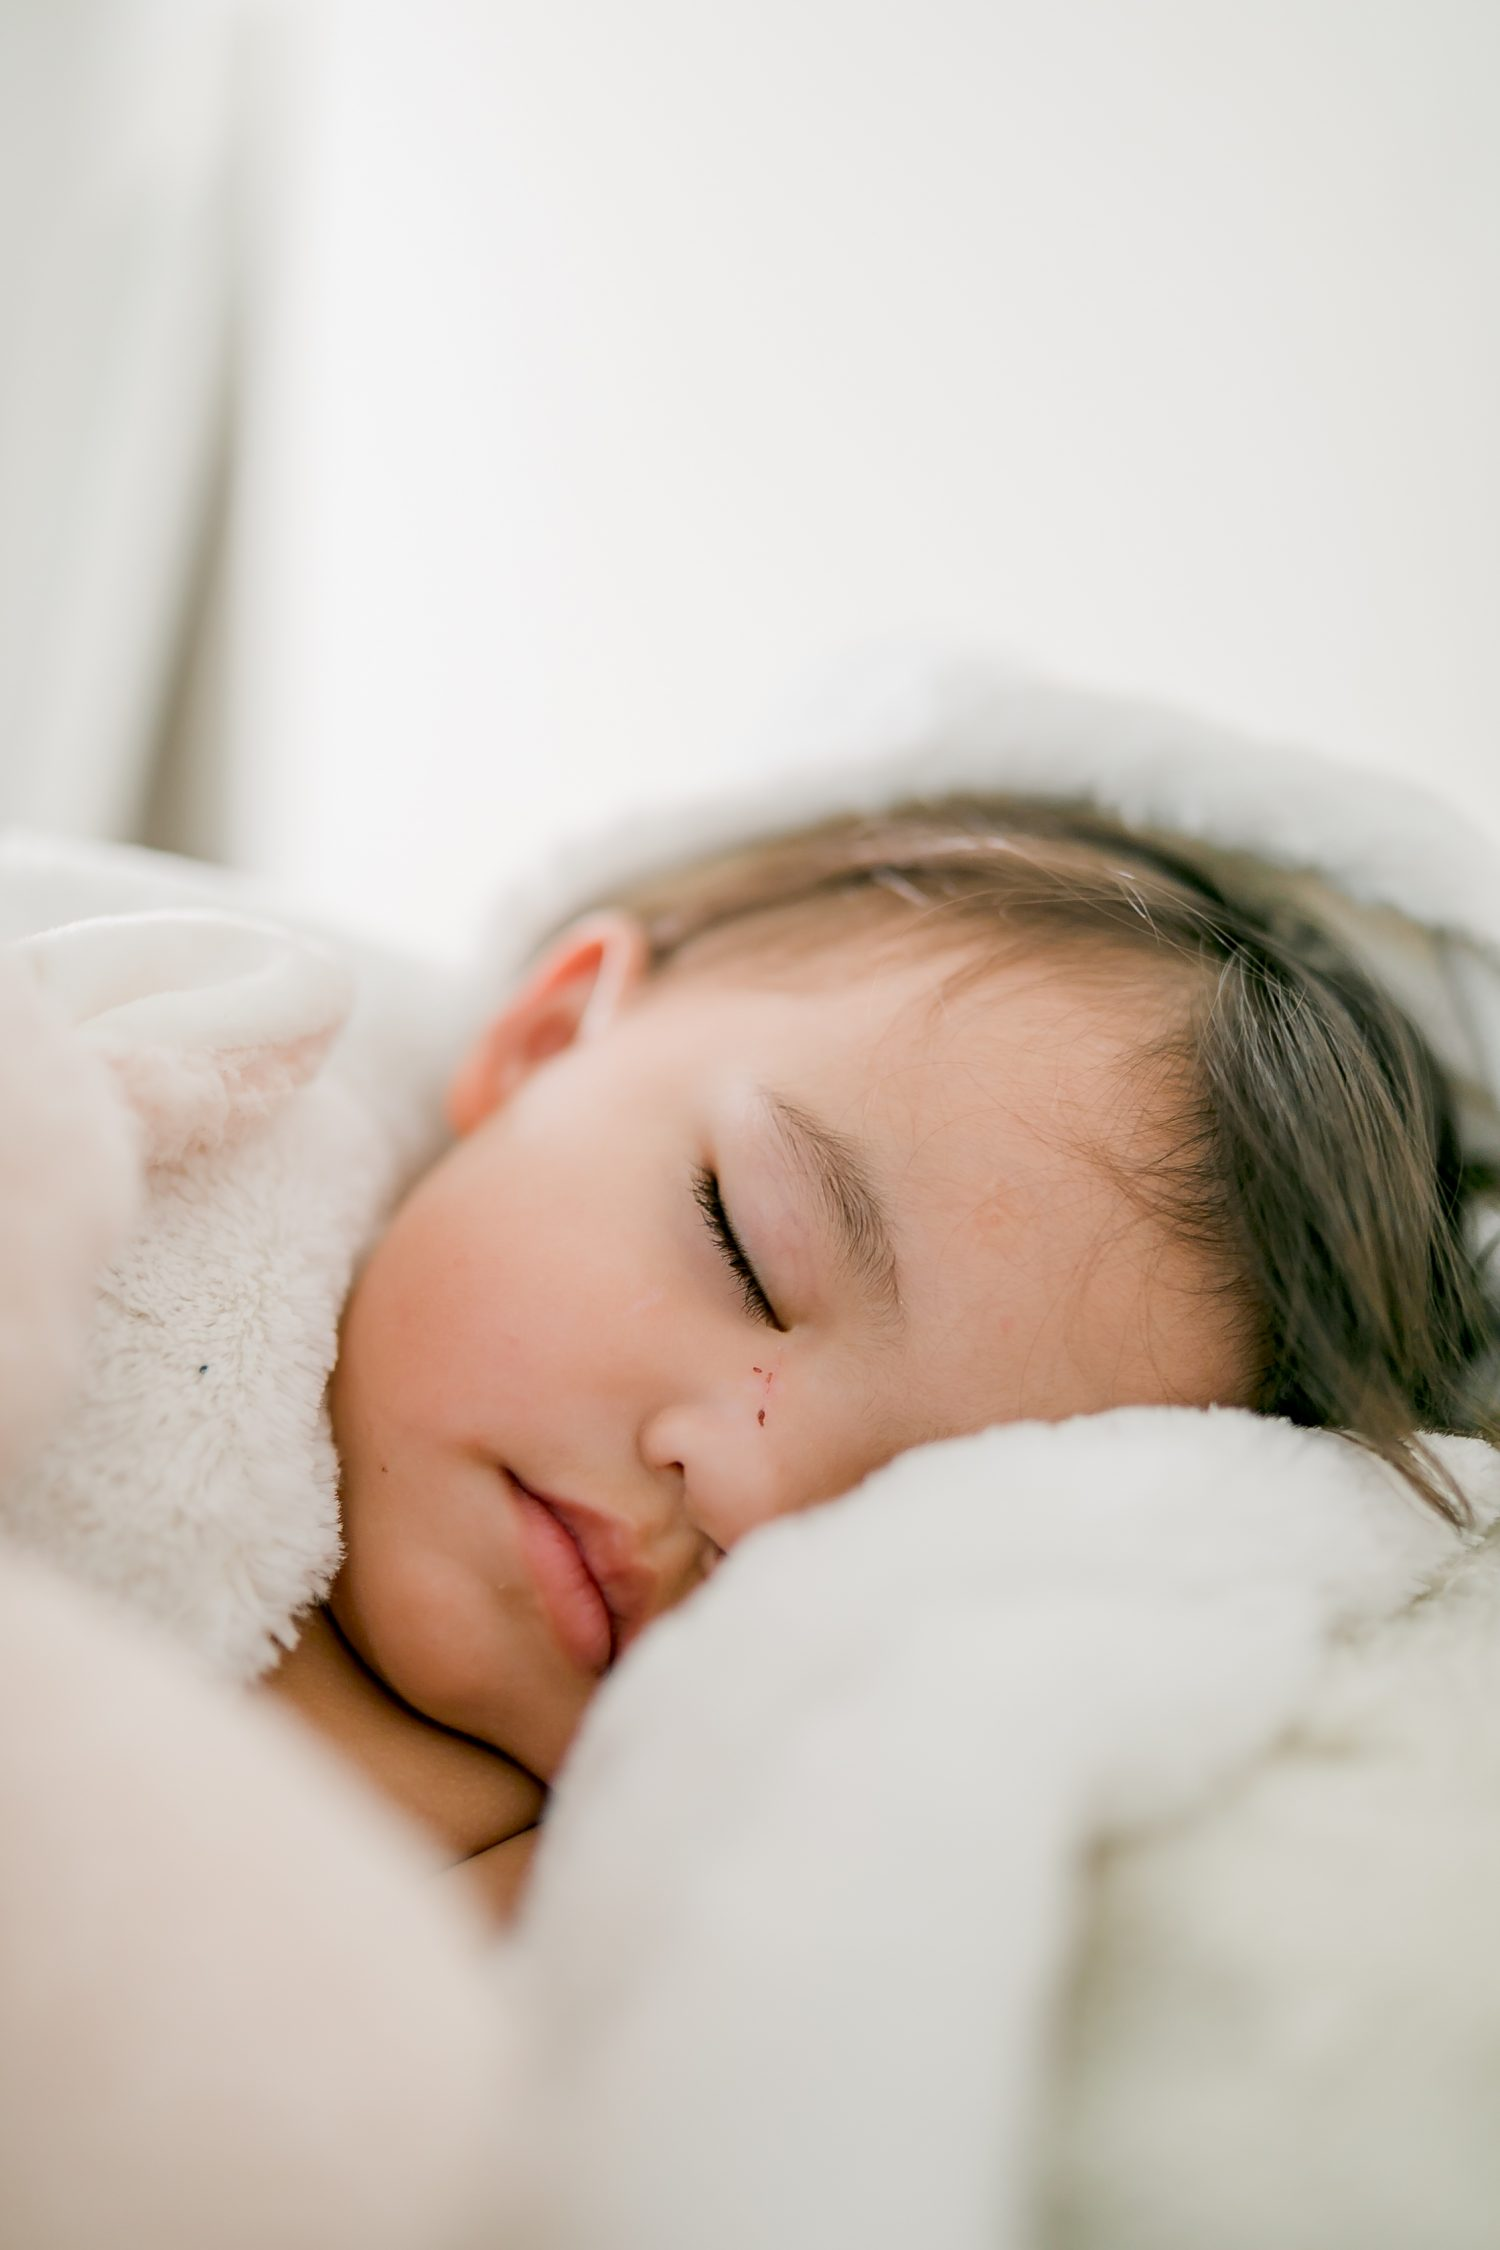 From Safe Sleep to Healthy Sleep: A Perspective on Sleep In the First Year